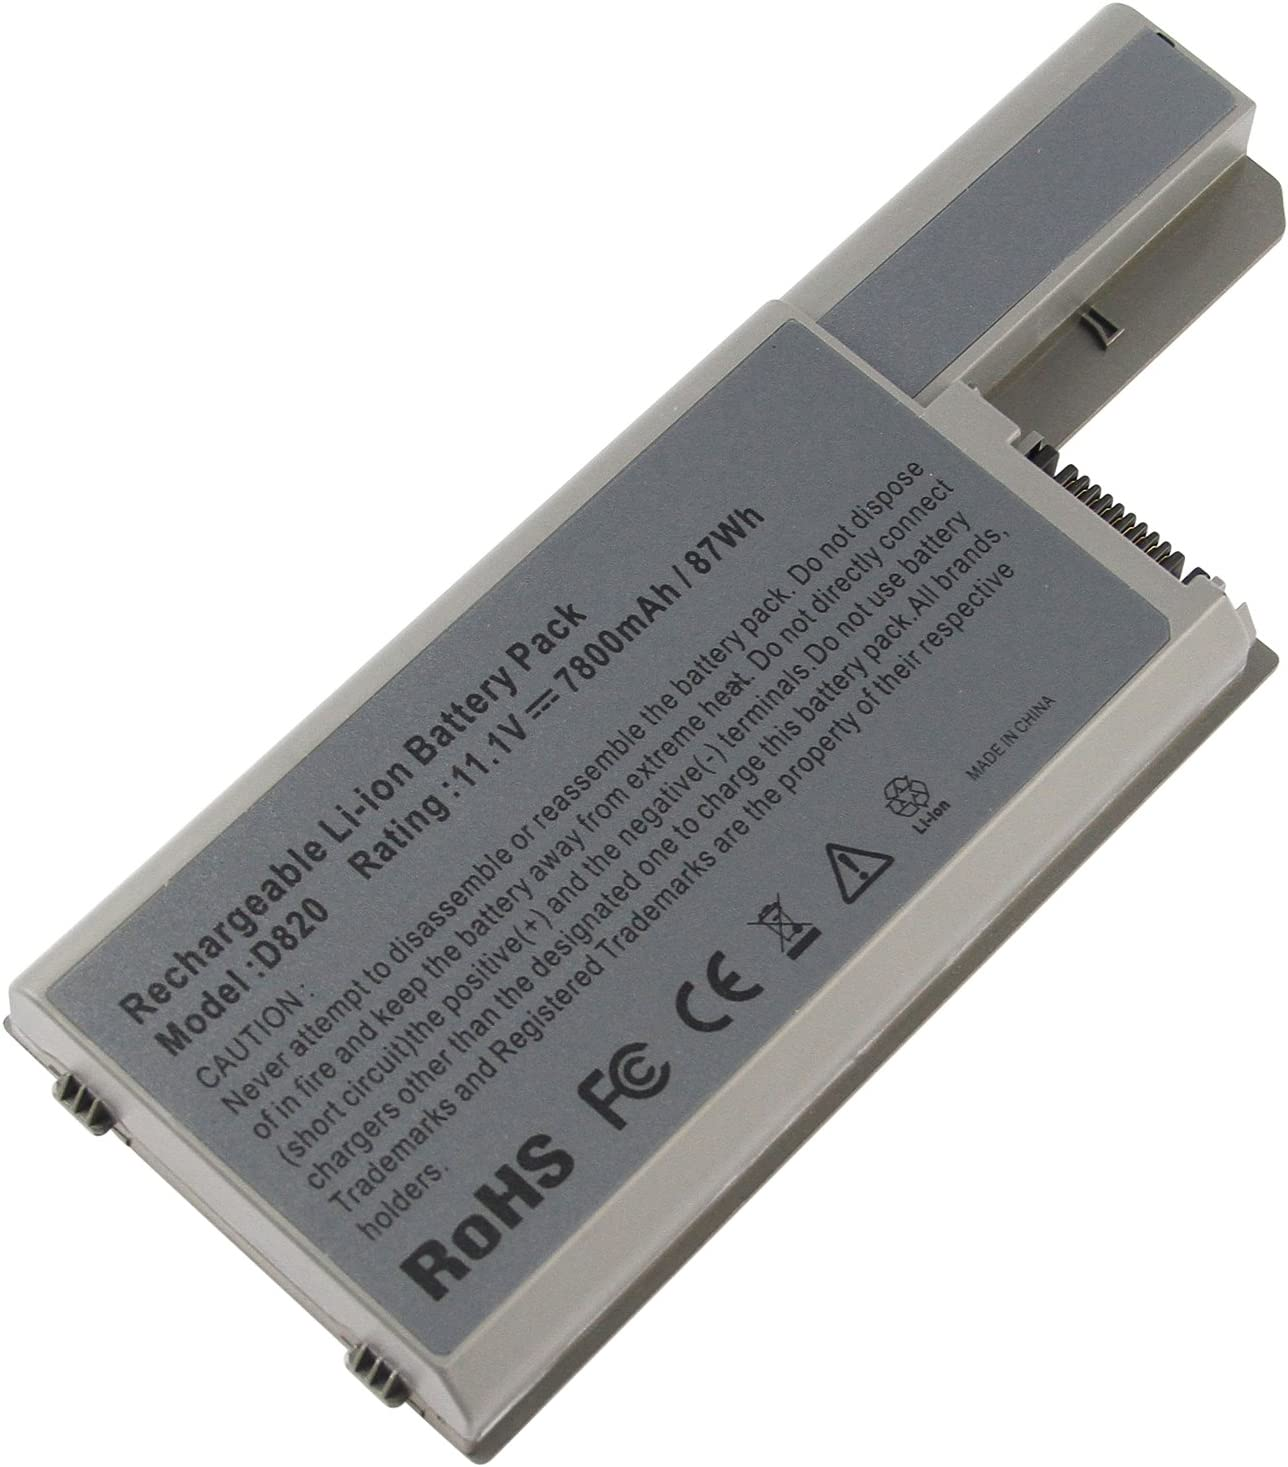 Futurebatt 9Cell 7800mAh Battery for Dell Latitude D830 D820 D531 D531N, Precision M4300 Mobile Workstation, Precision M65, 310-9122 312-0393 312-0401 451-10308 451-10326 451-10410 DF192 DF230 DF249